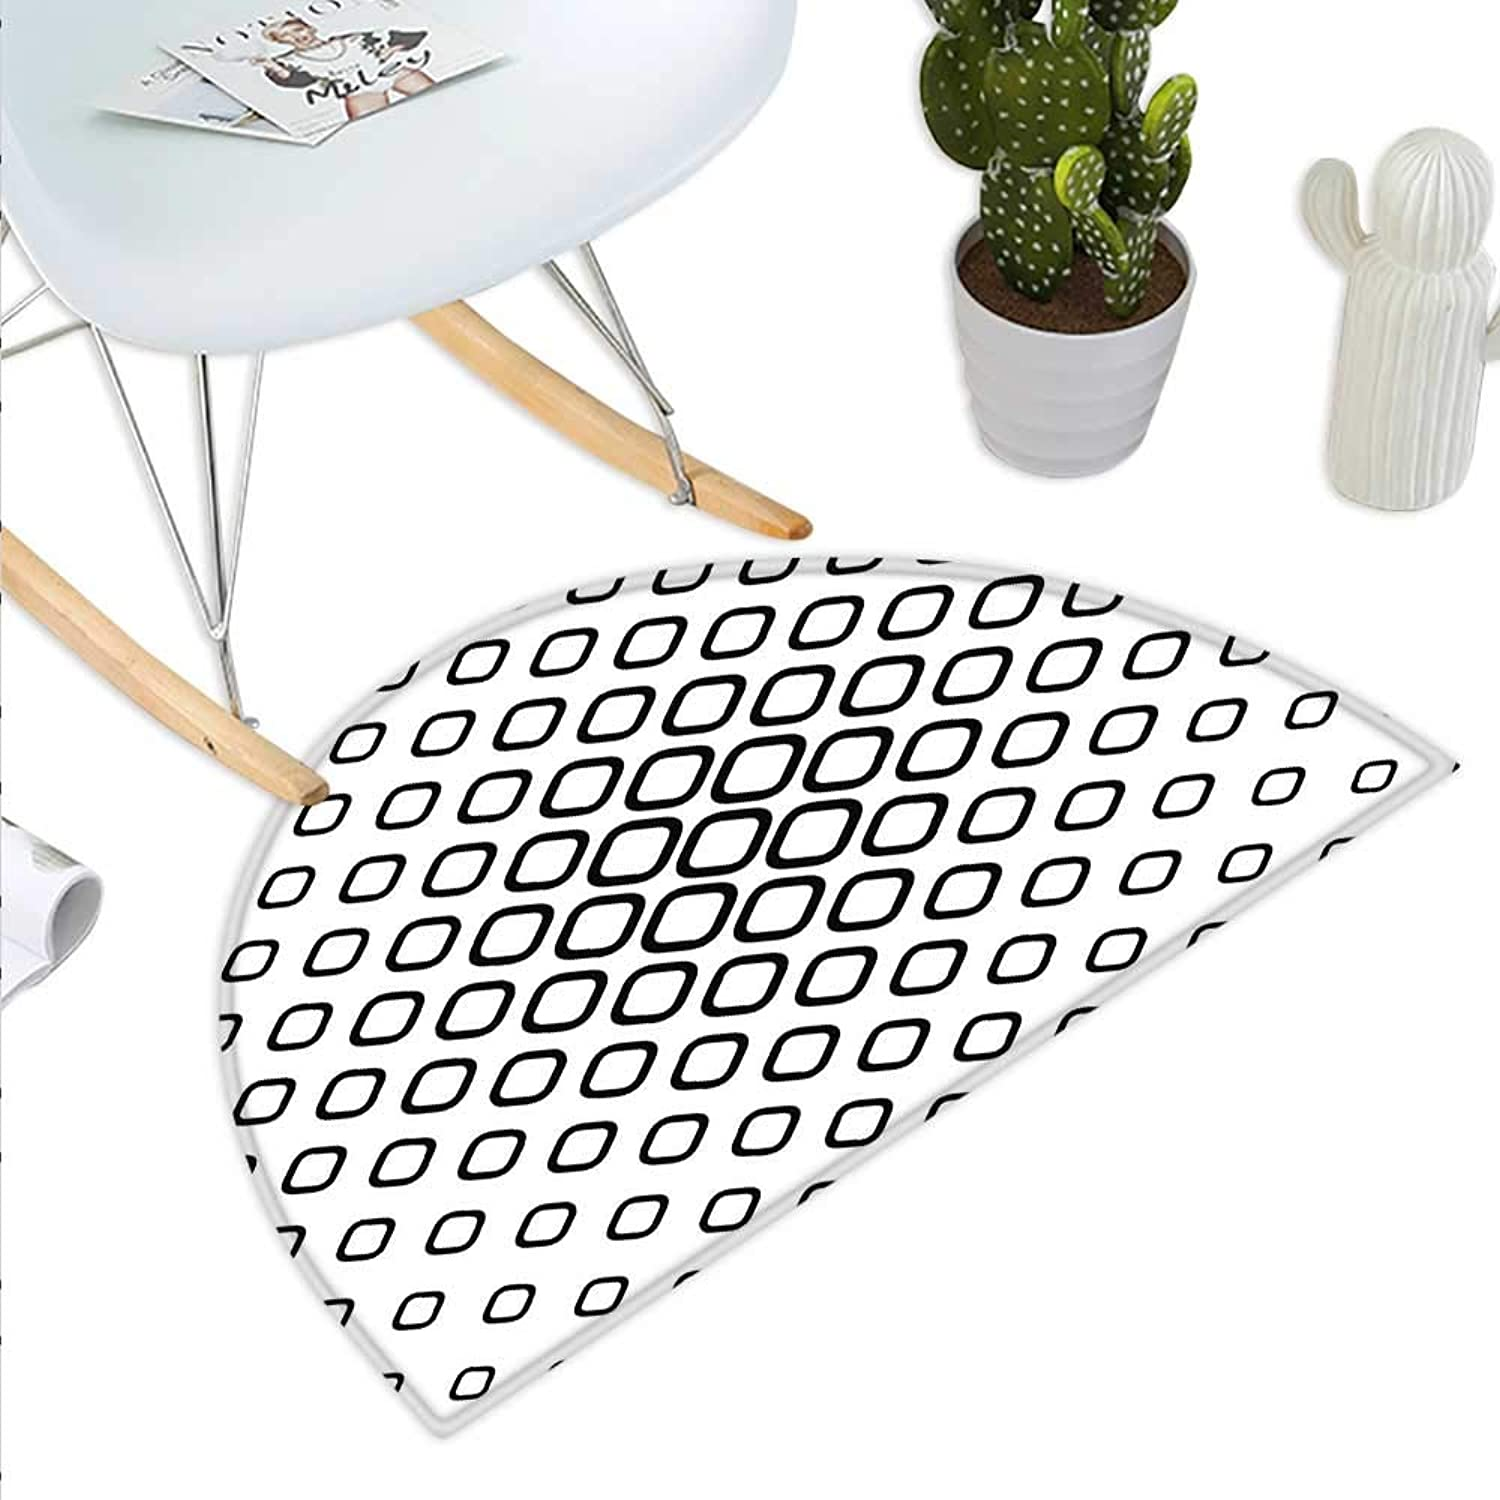 Abstract Semicircle Doormat Trippy Fractal Geometrical Rounded Square Shapes Minimalist Artisan Pattern Halfmoon doormats H 35.4  xD 53.1  Black and White